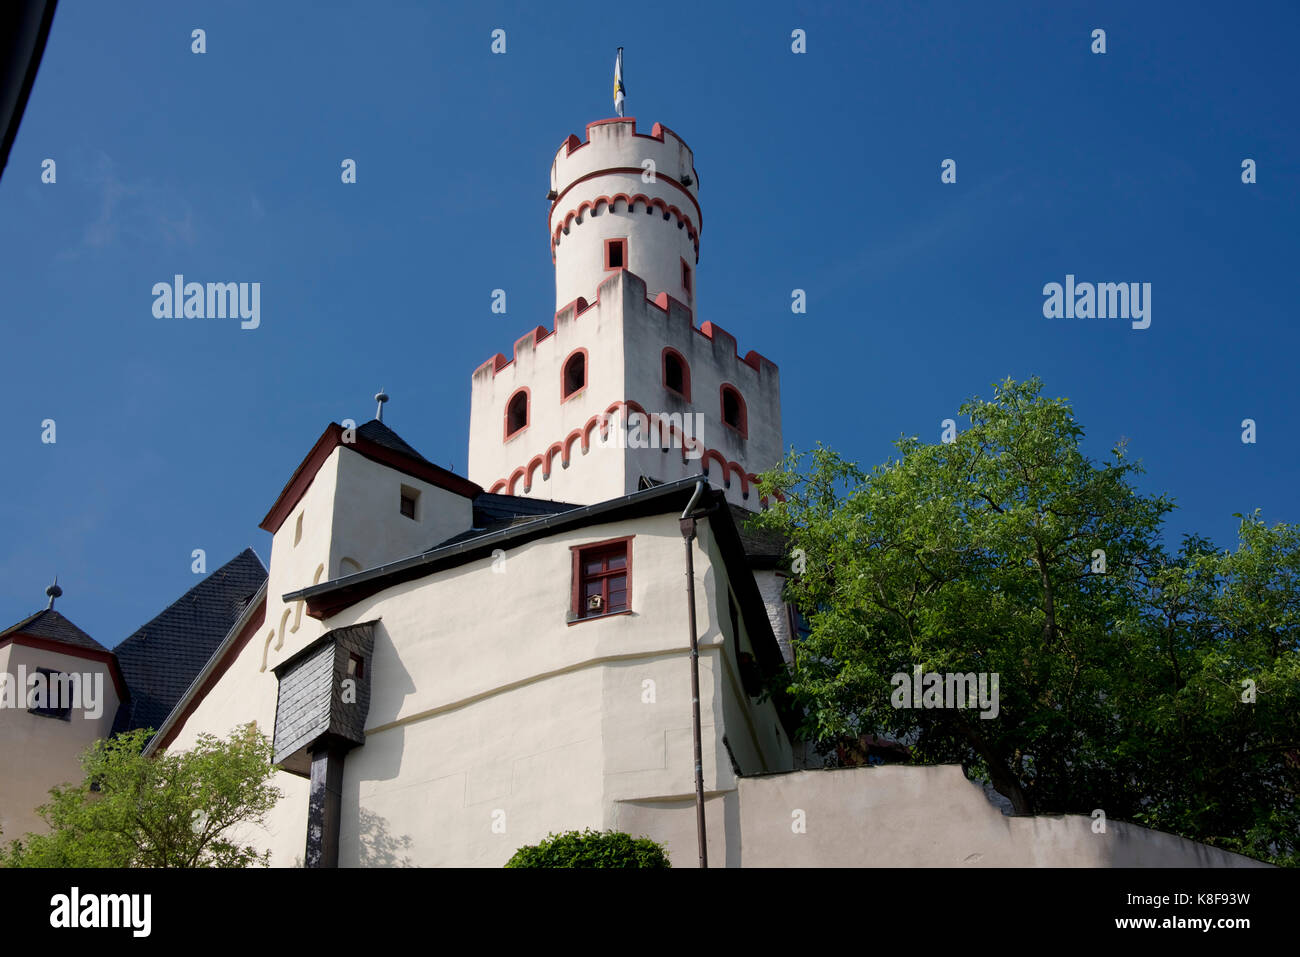 armory chamber stock photos u0026 armory chamber stock images alamy